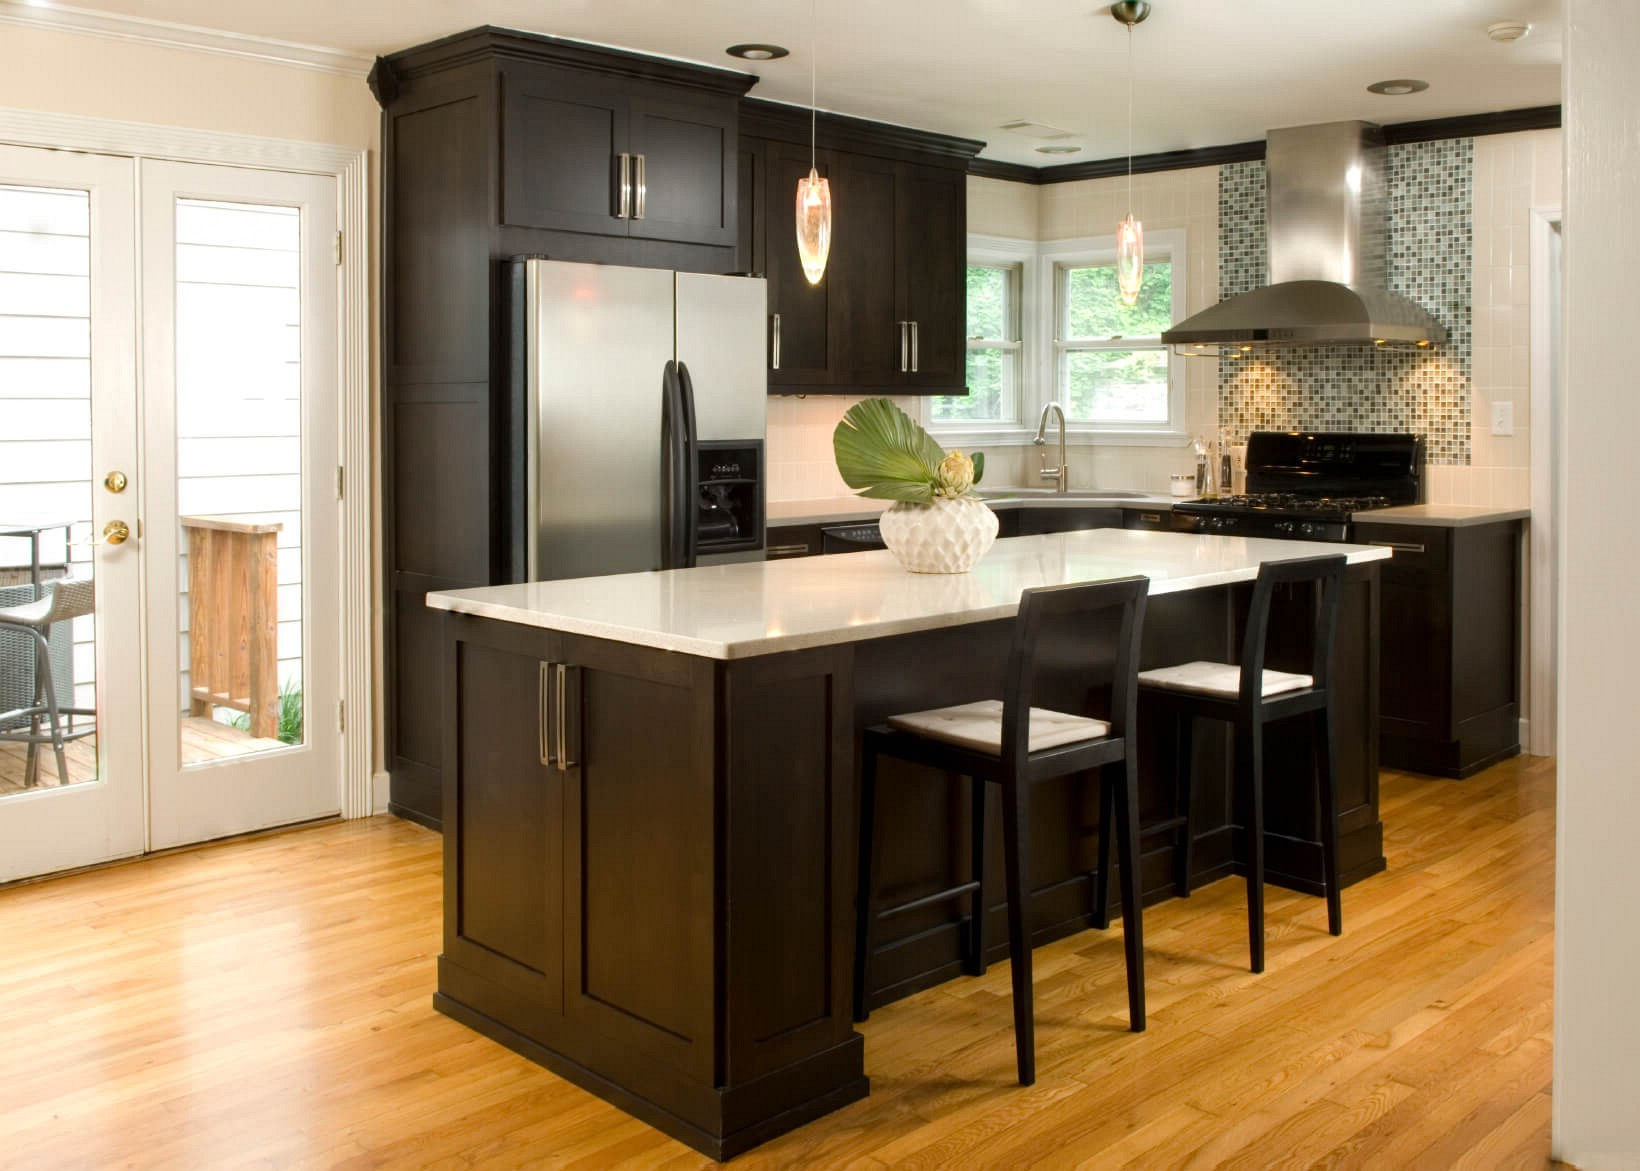 black metal carving pendant lamps rustic wooden dining set stainless steel sinks chocolate wooden cabinet dark wood floors with white cabinets desireerover